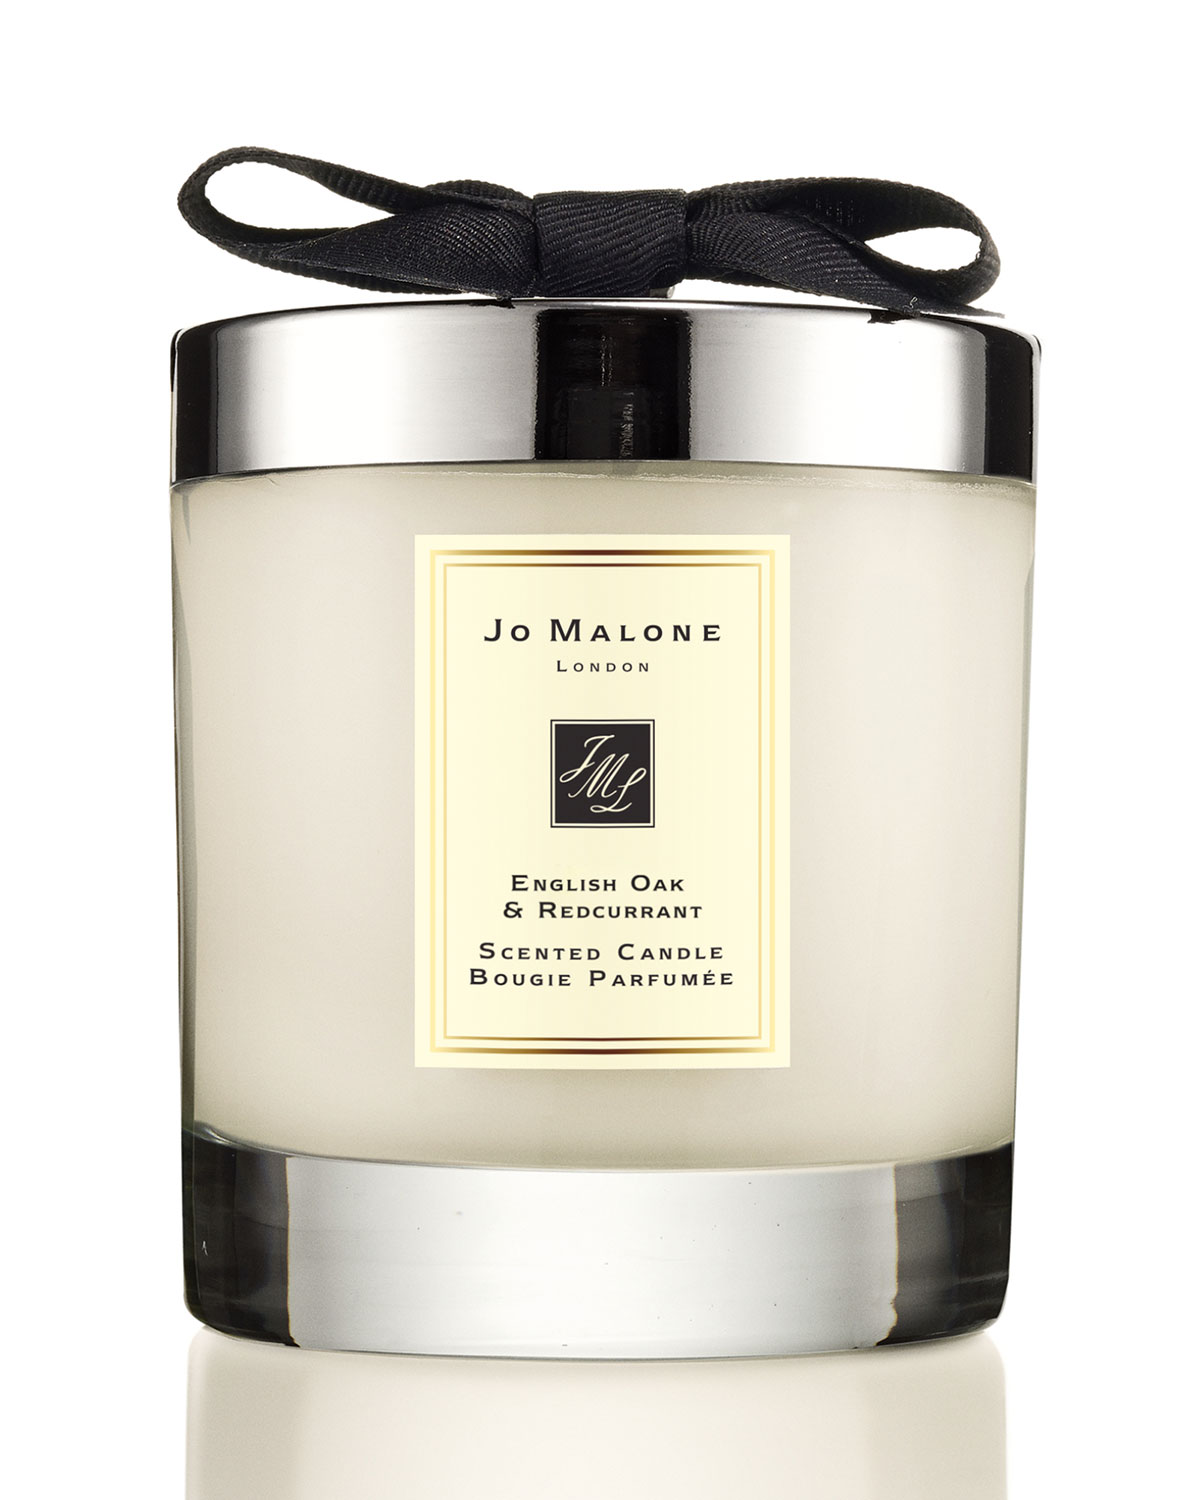 Jo Malone London English Oak & Redcurrant Home Candle, 7 oz. / 198g